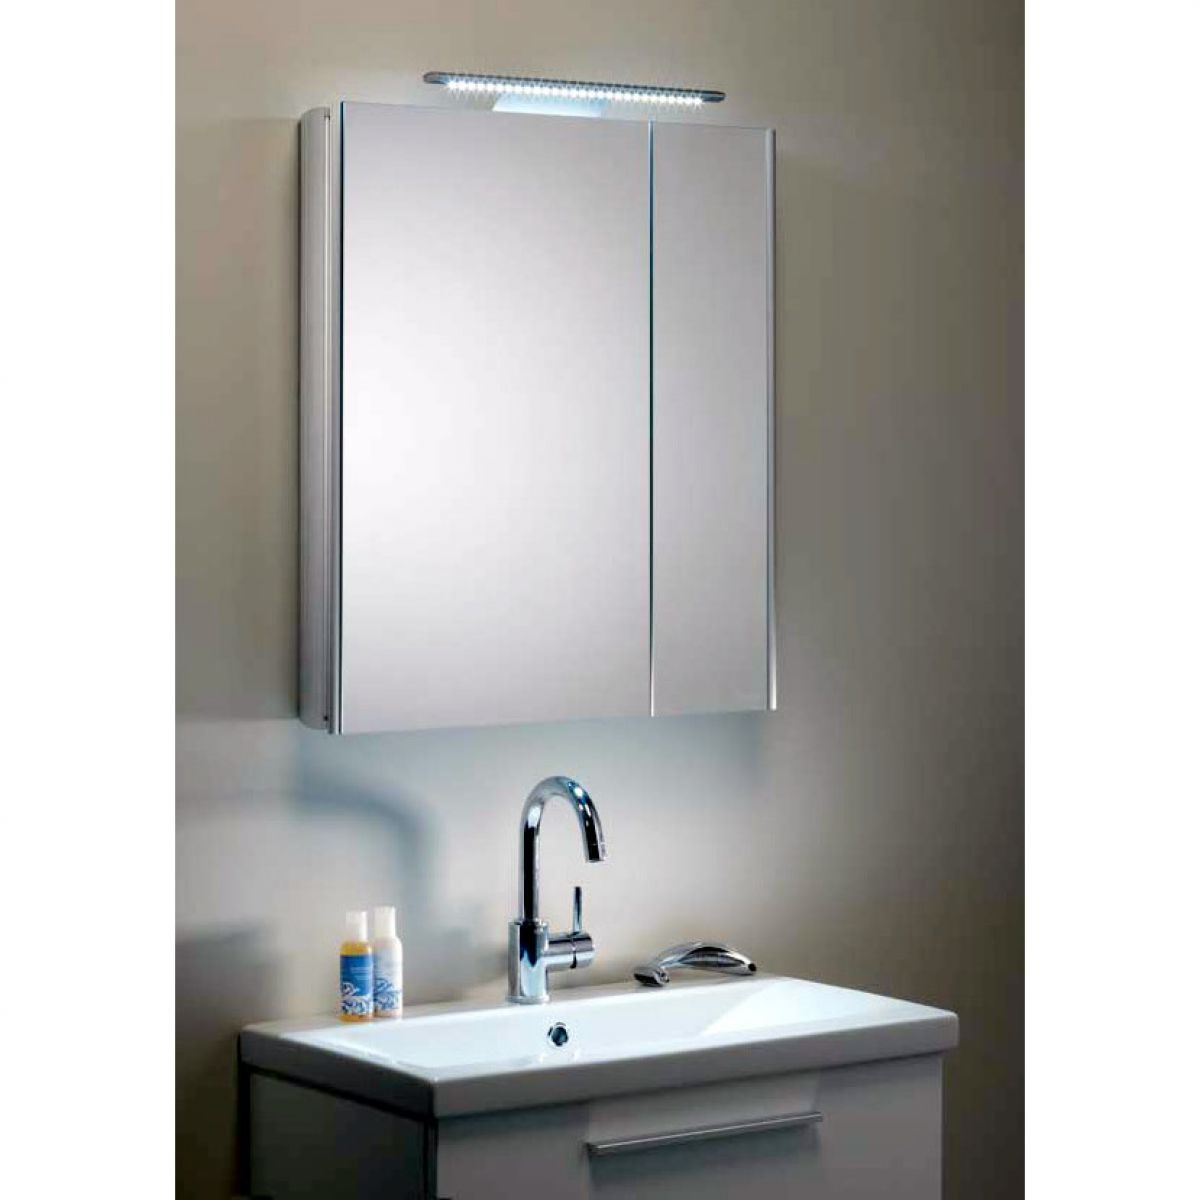 Roper rhodes ascension refine slimline split door cabinet for Toilet furniture cabinet